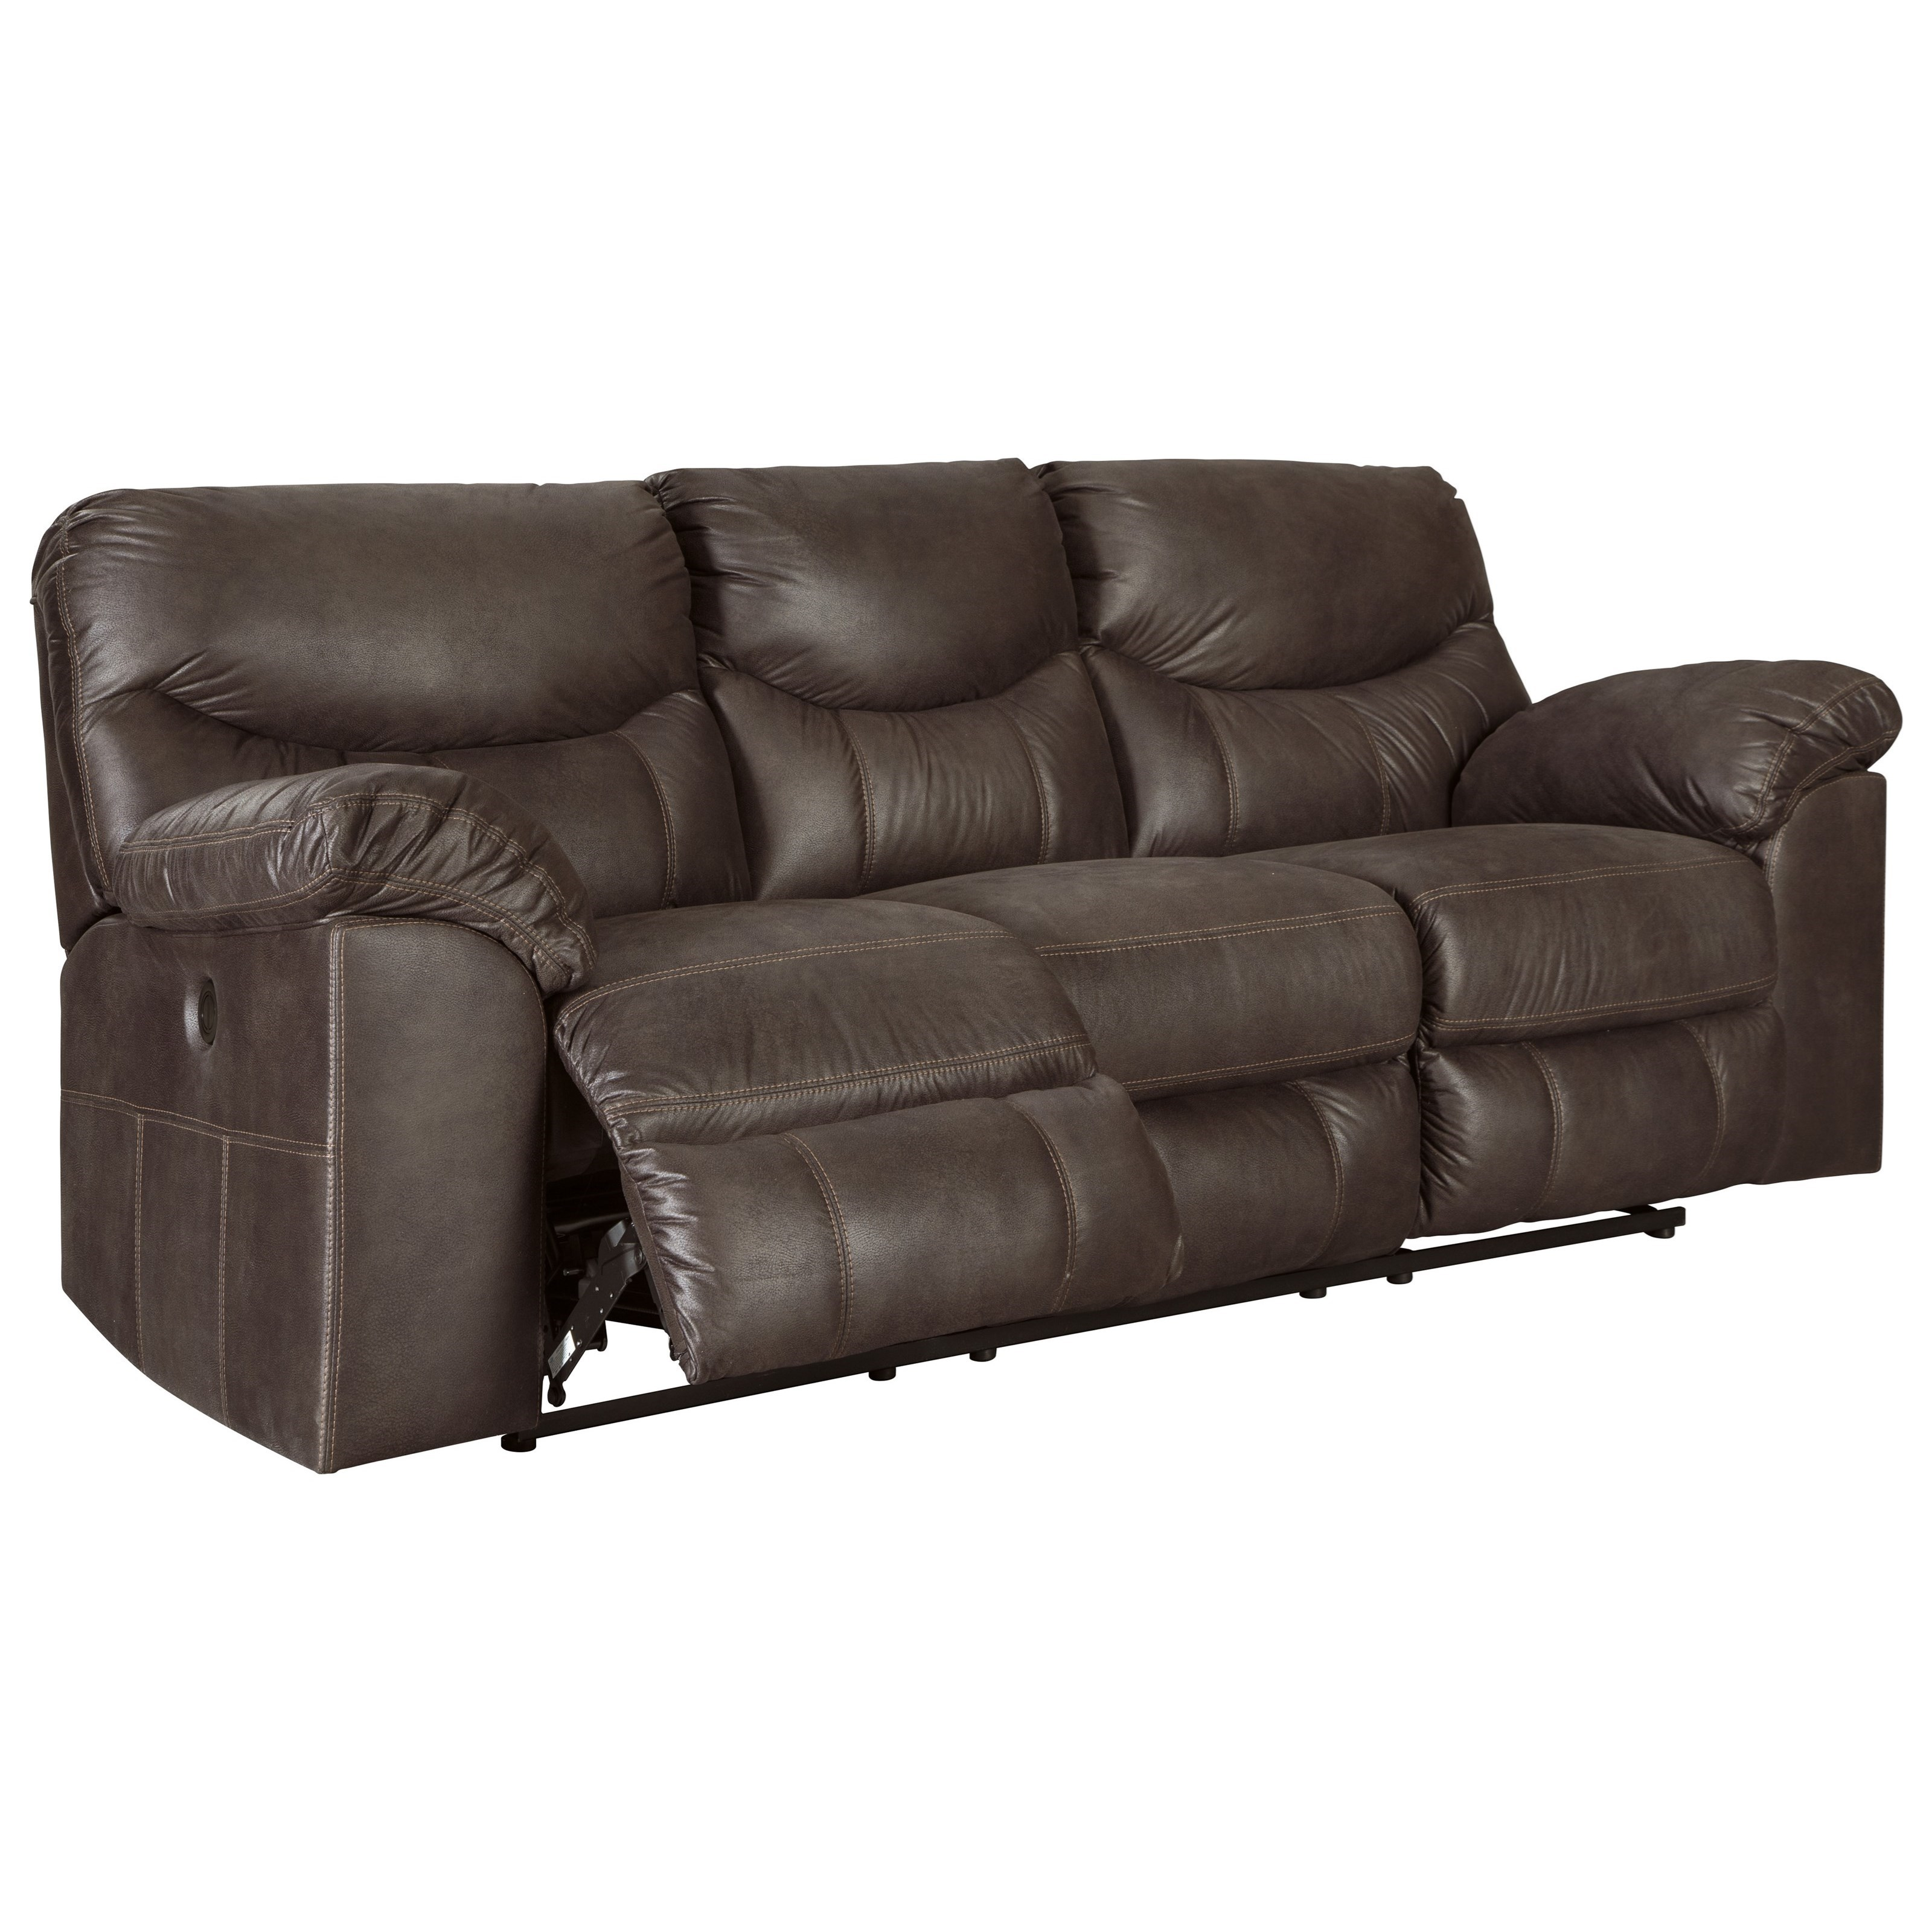 Ashley Furniture Outlet Wausau: Signature Design By Ashley Boxberg 3380388 Casual